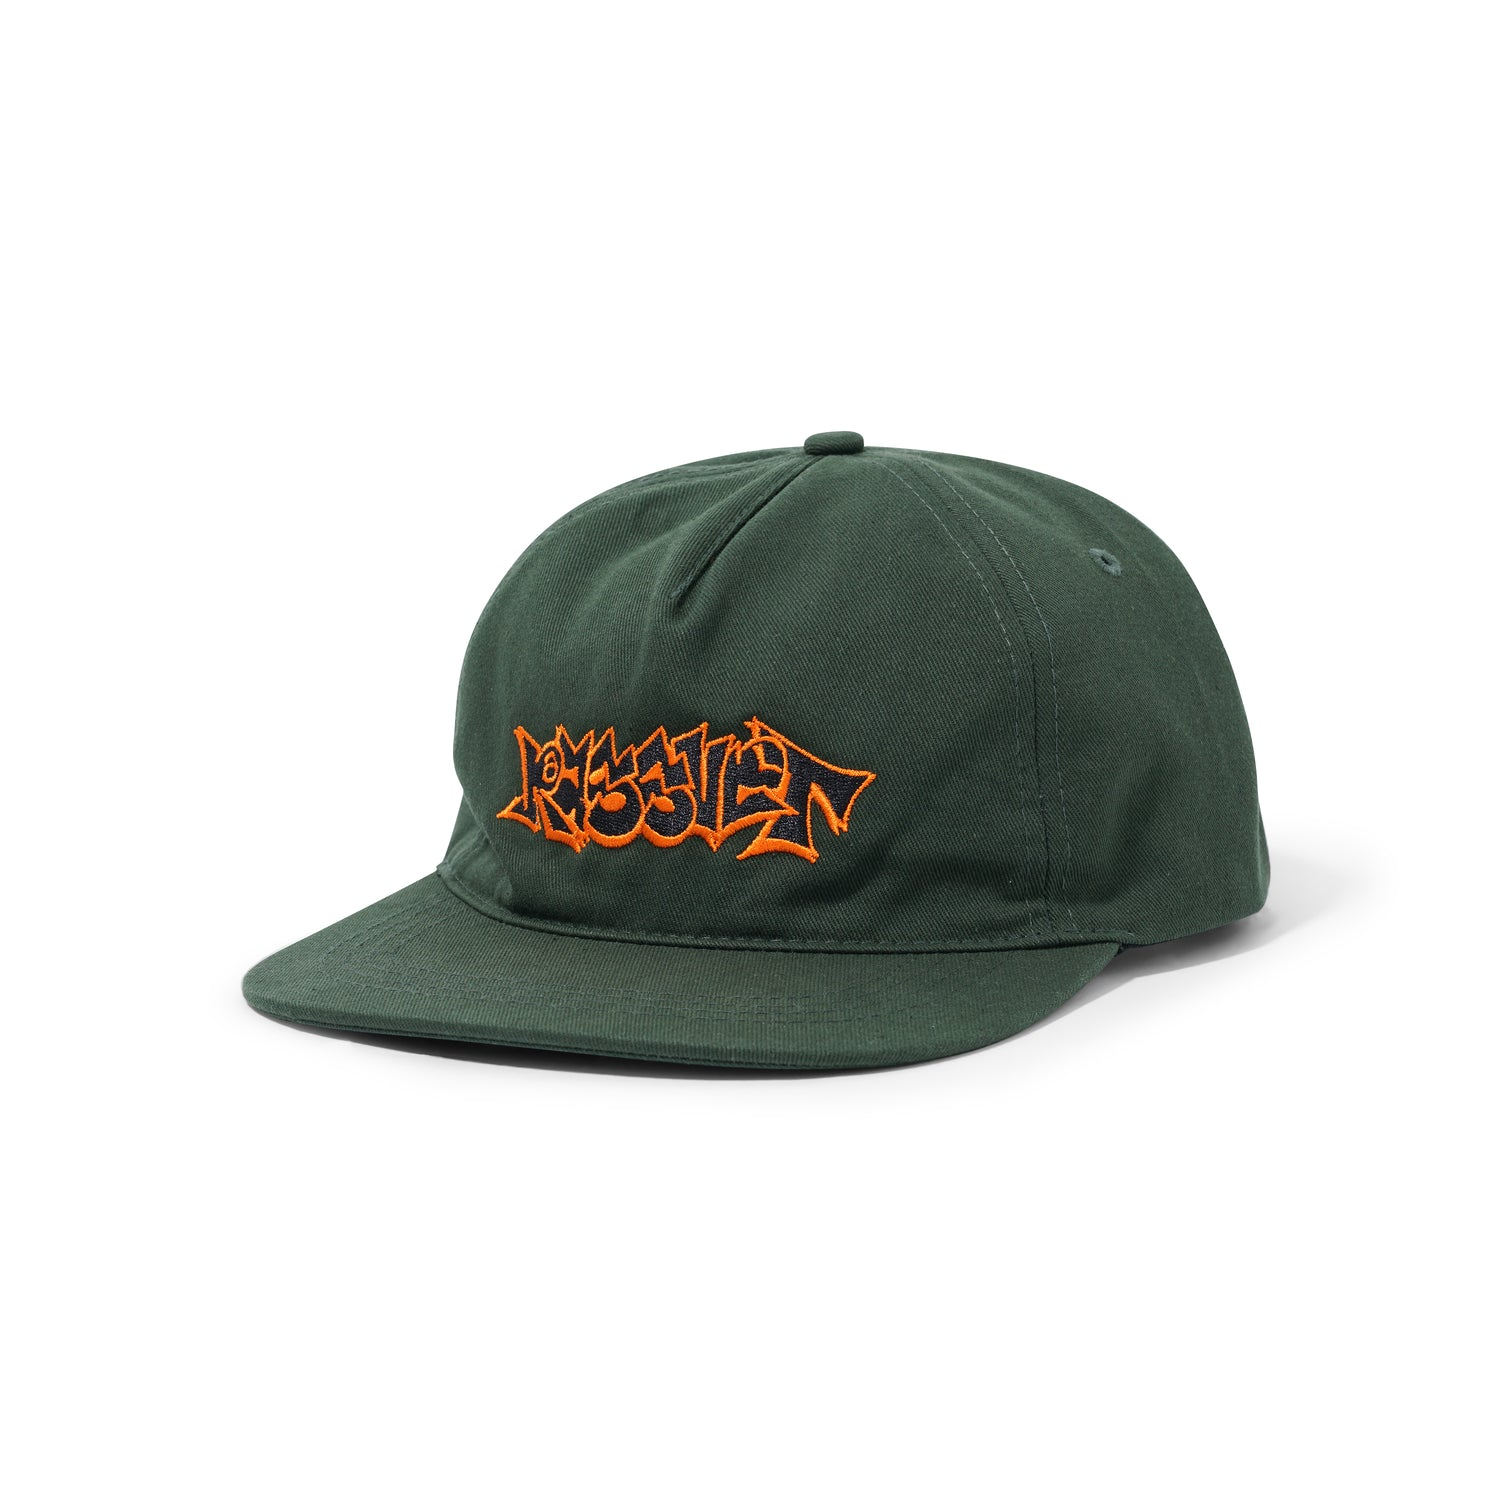 Graffiti Cap, Dark Green